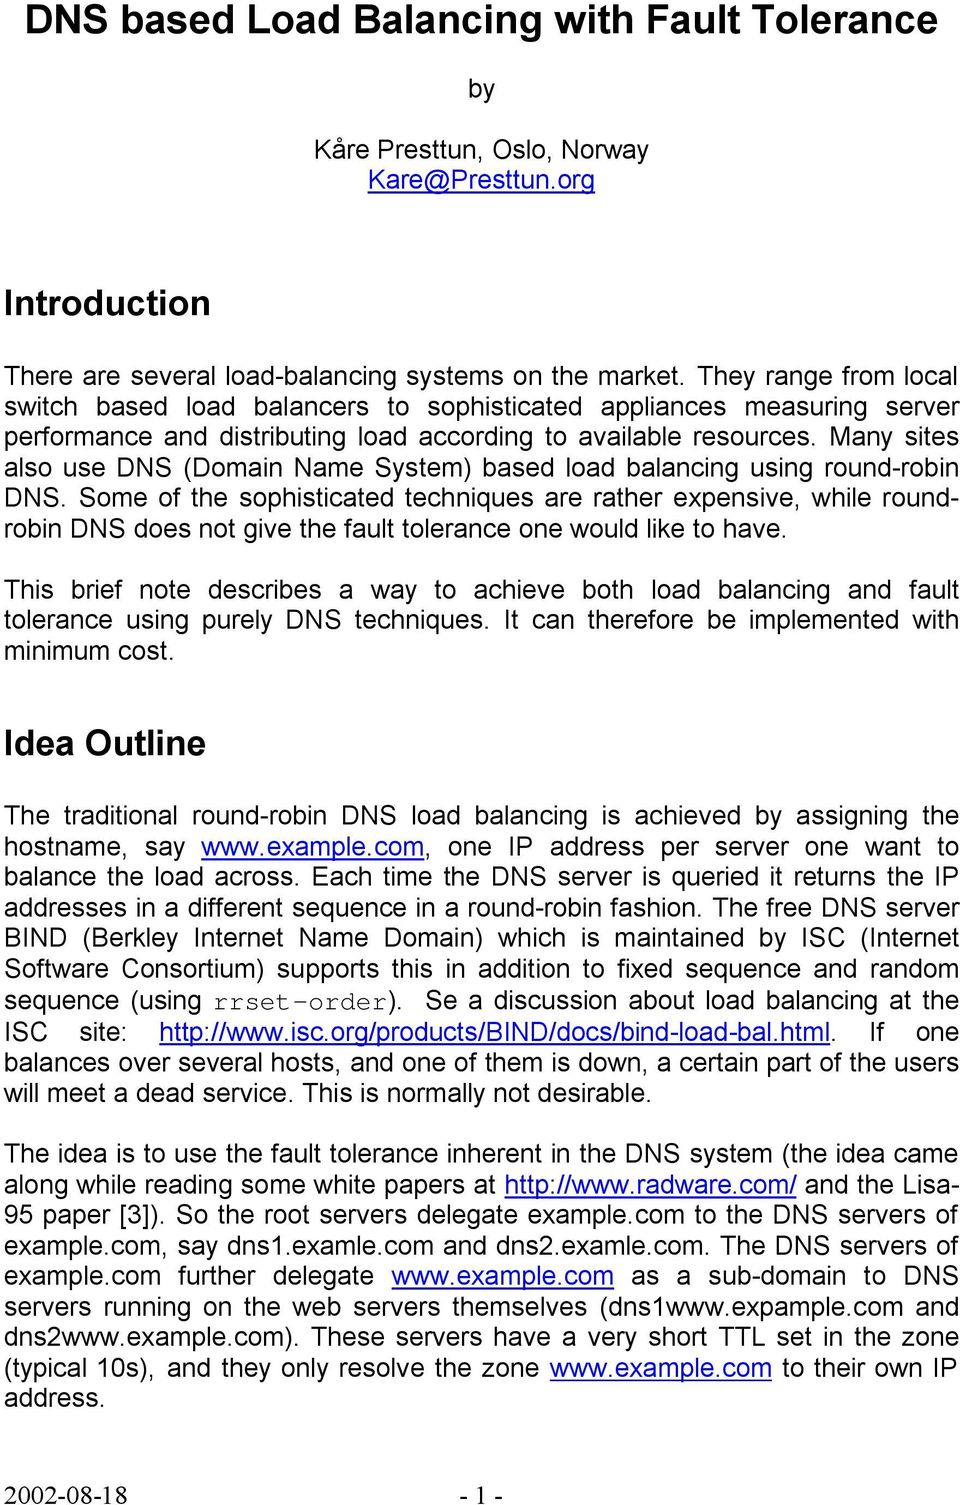 Many sites also use DNS (Domain Name System based load balancing using round-robin DNS.